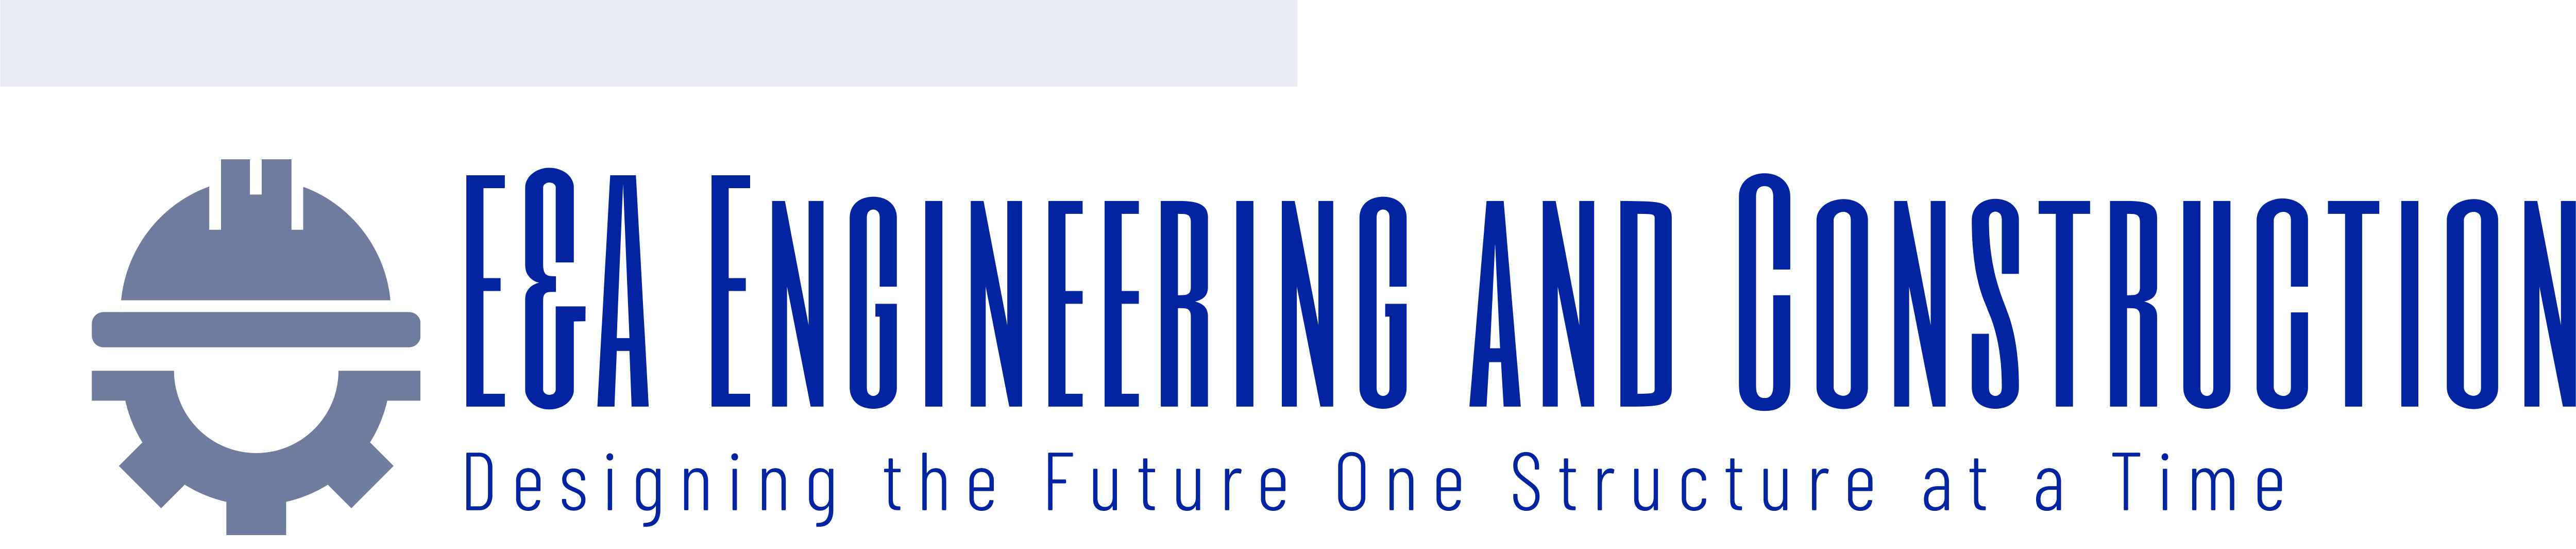 TEDxSanAantonio Fall 2019 THINKER Sponsor: E&A Engineering and Construction